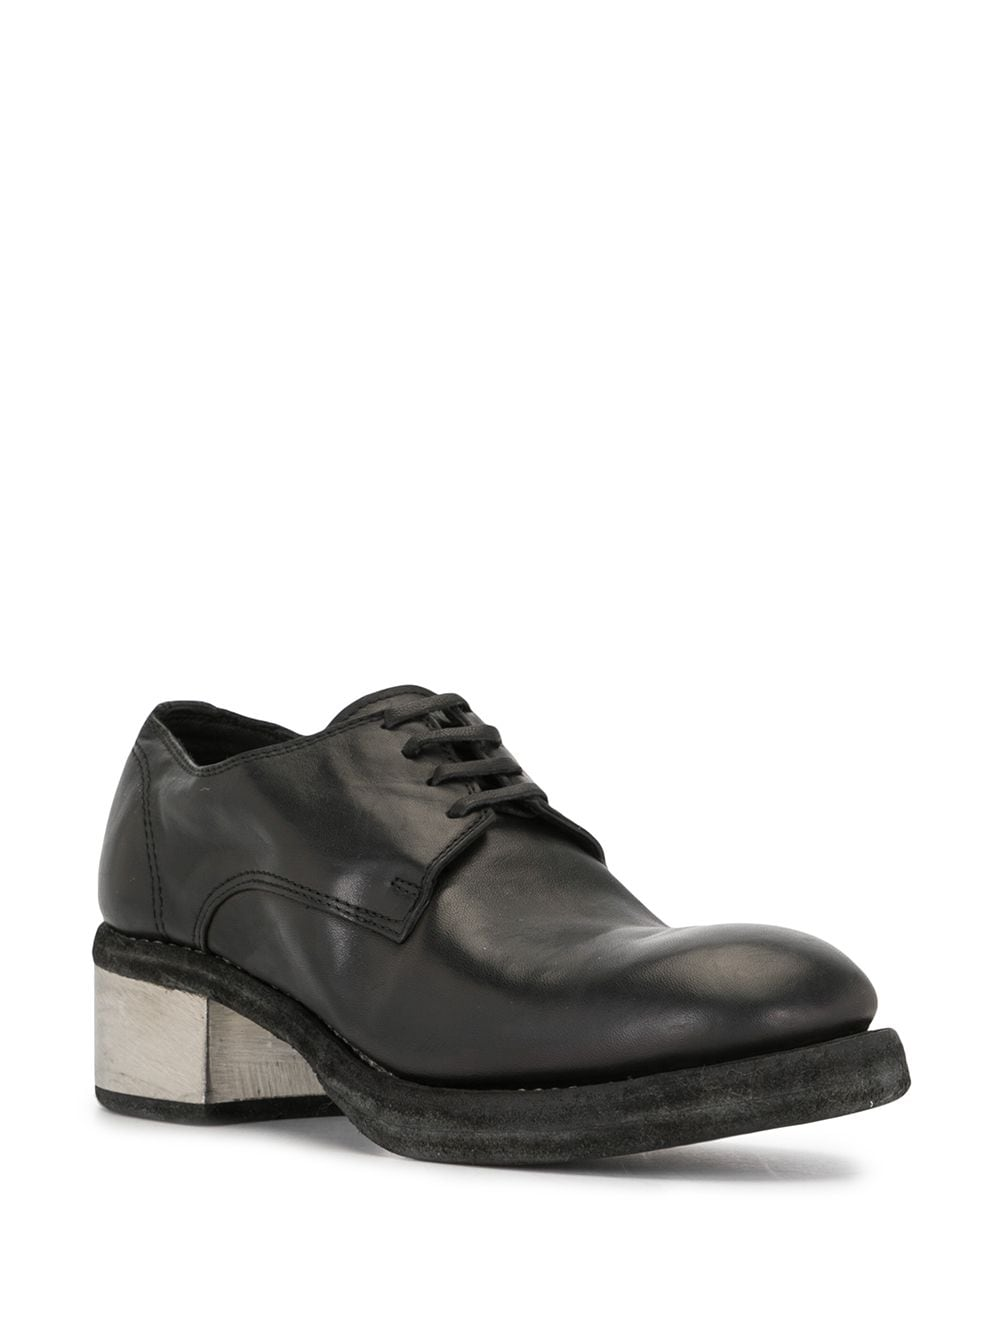 GUIDI WOMEN 792ZI SOFT HORSE LEATHER CLASSIC DERBY WITH METAL HEEL